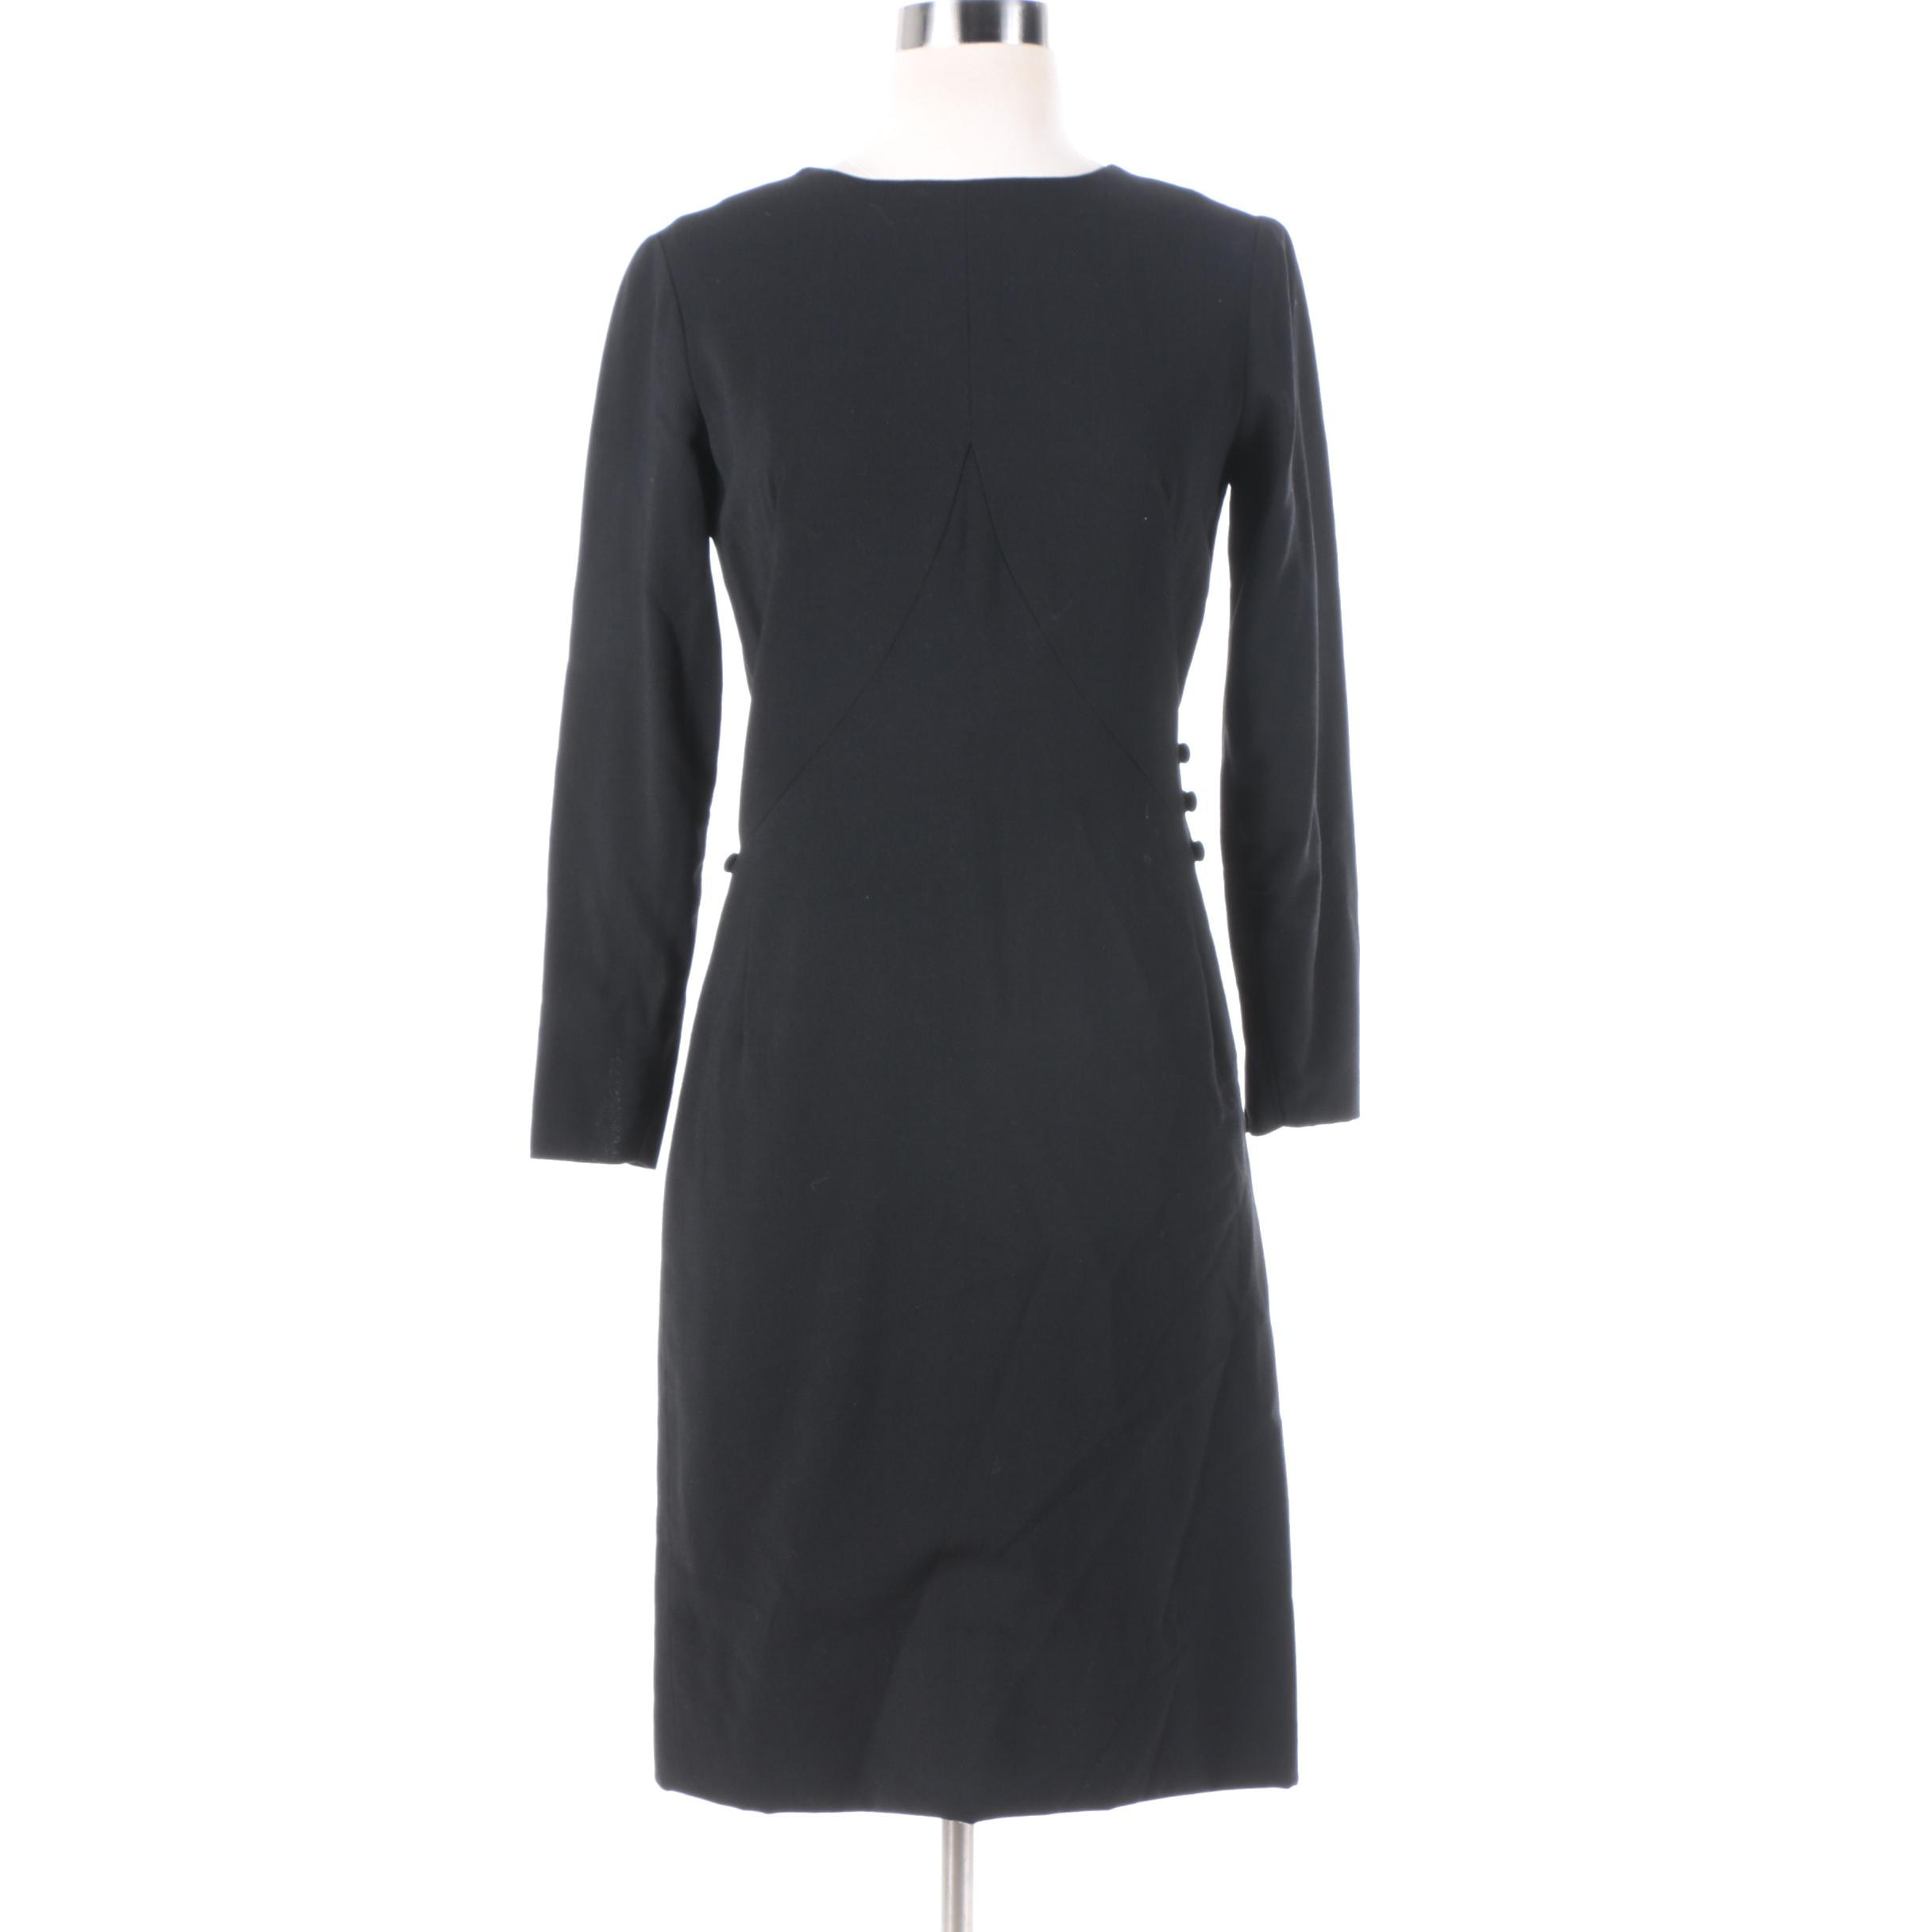 1960s Vintage Balenciaga Black Button Waist Cocktail Dress